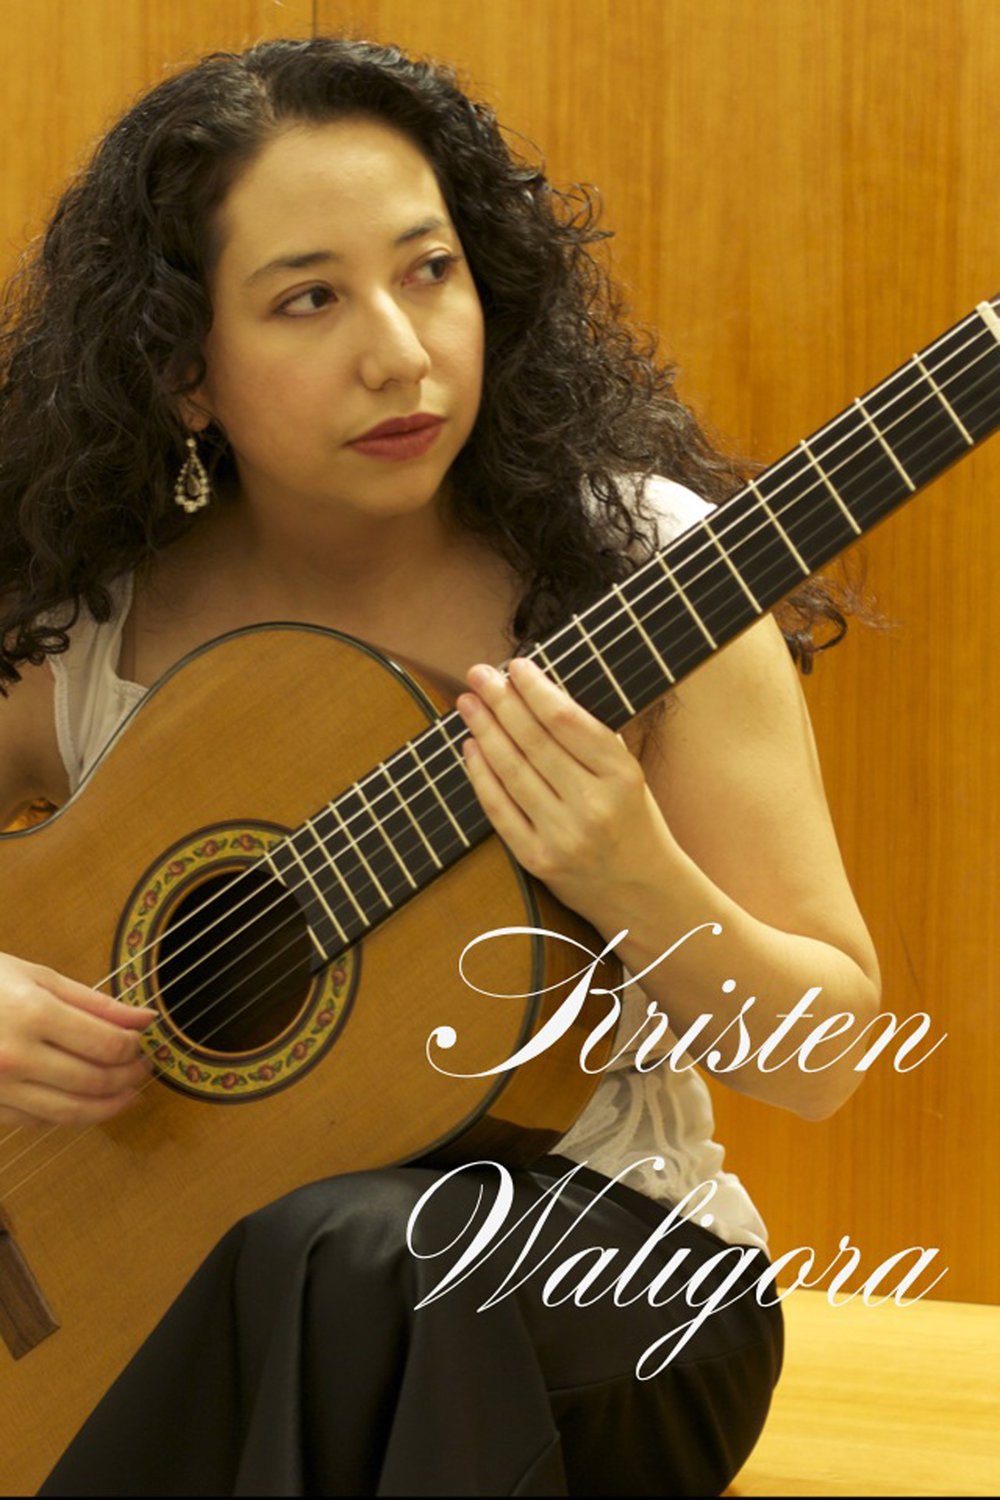 duo_tenebroso_kristen_waligora_classical_guitar_formal.jpg